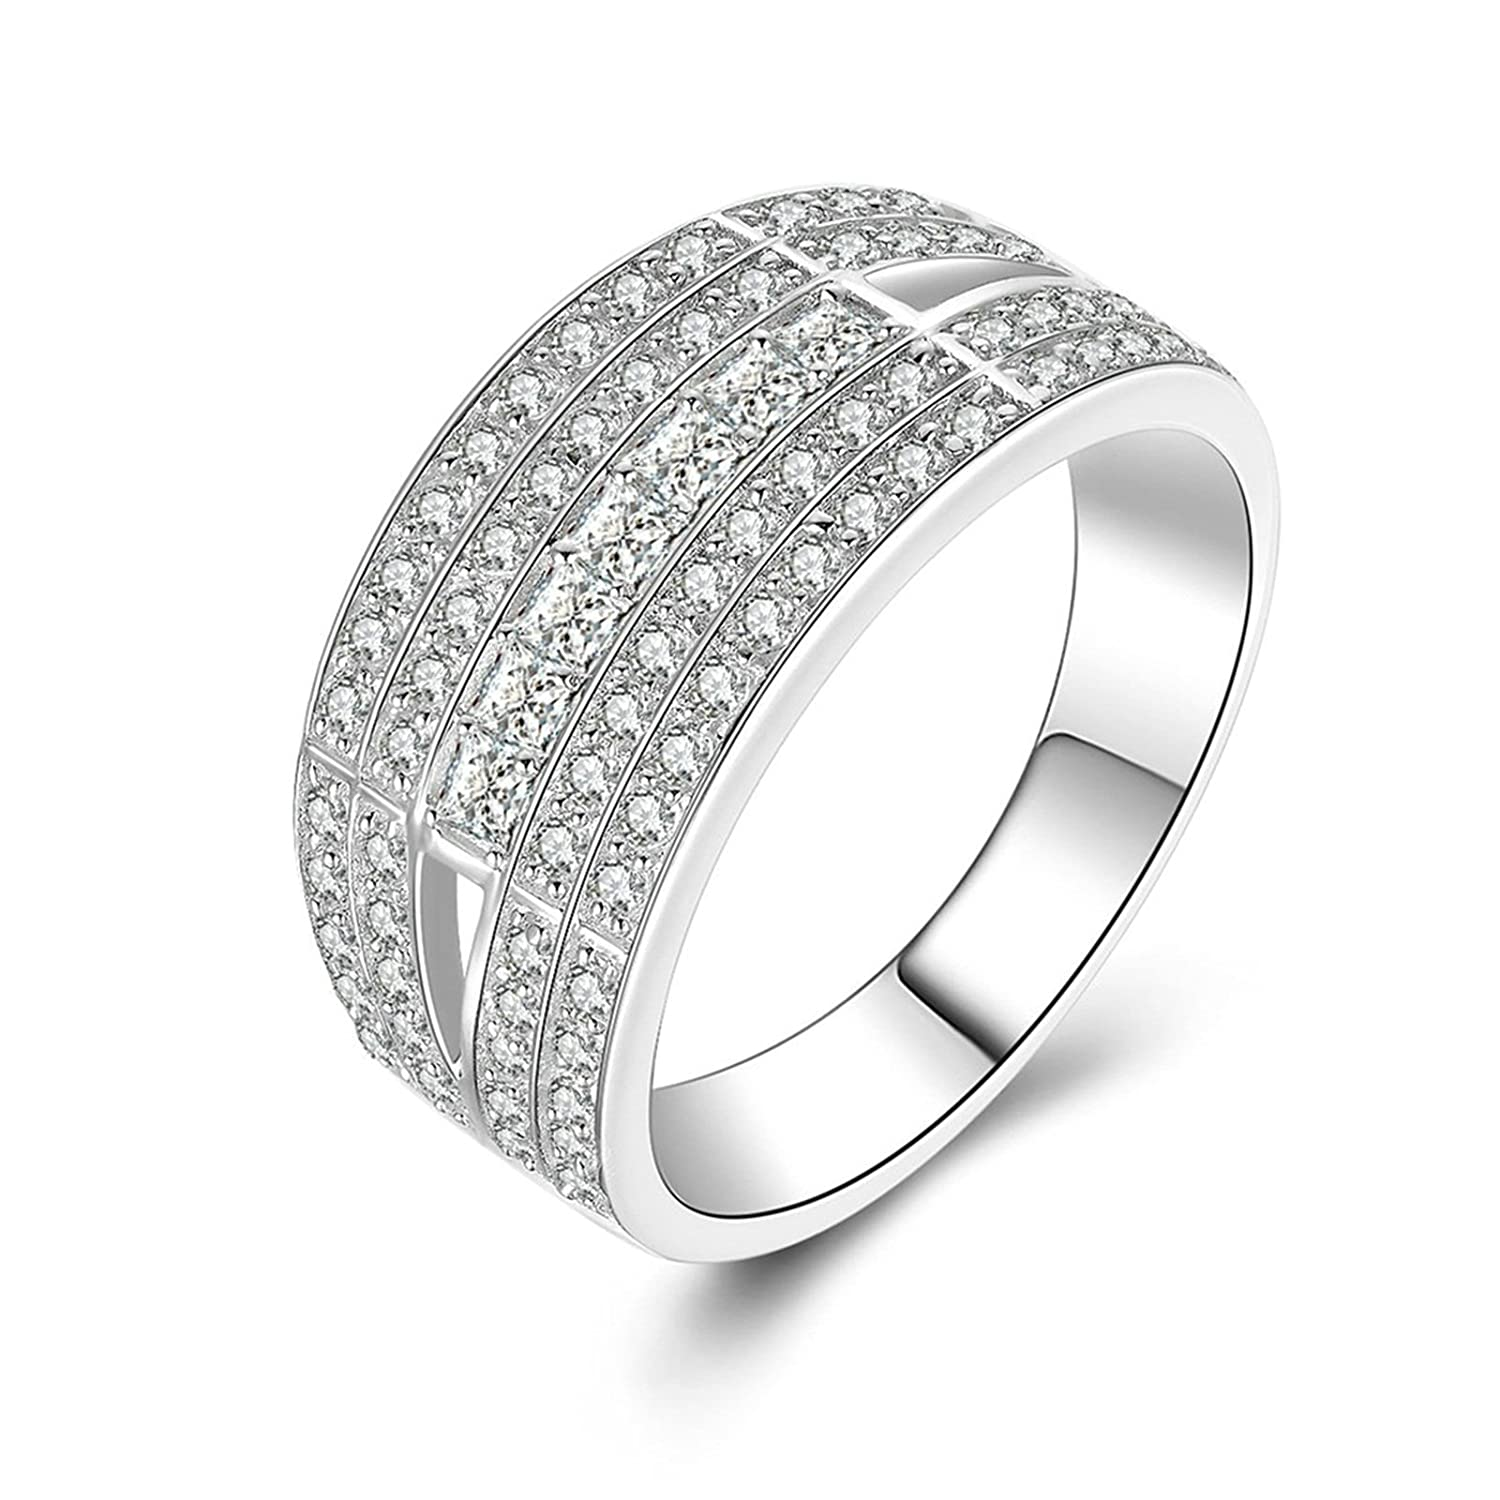 Bishilin Mens Rings Promise Iced Out Ring Round White Cubic Zirconia Size 7